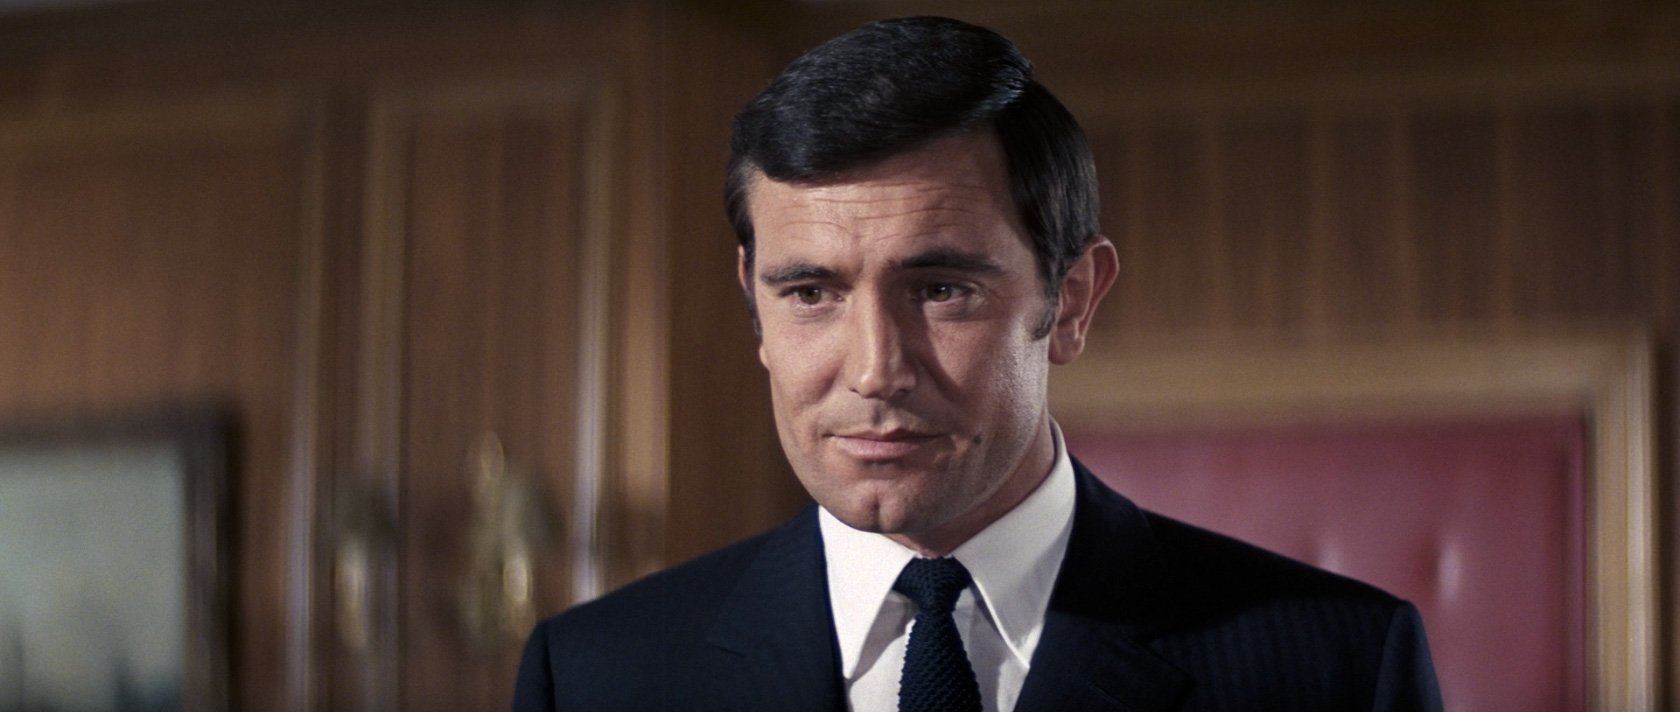 George lazenby casino online casino for real cash